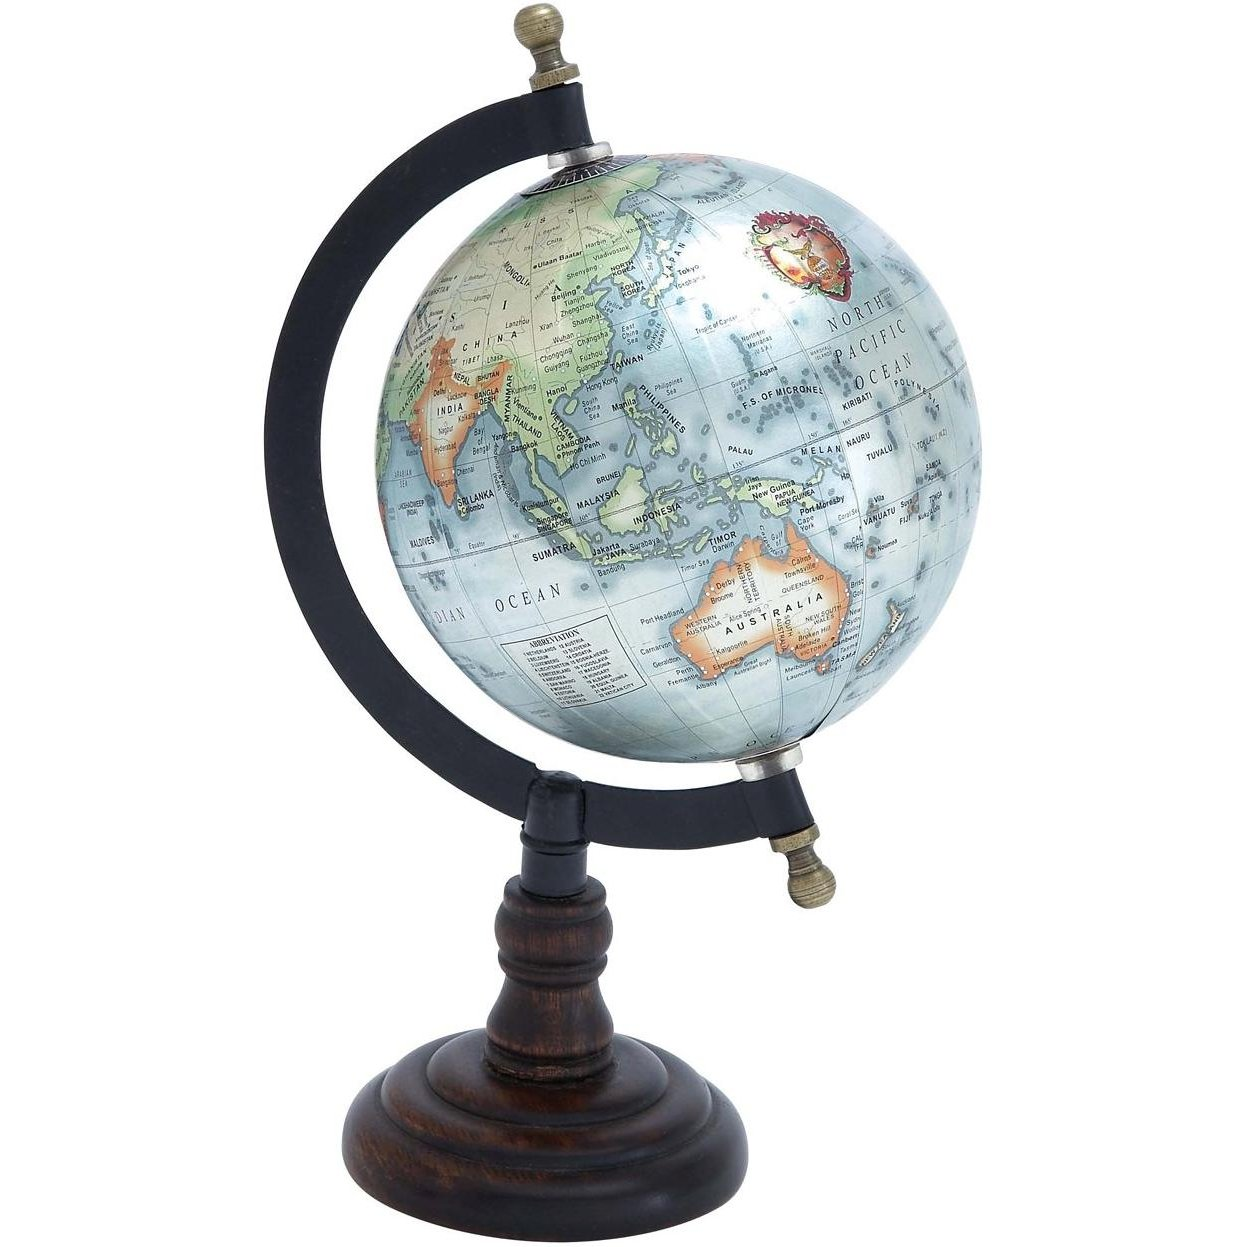 You can't go wrong with this tabletop globe from RC Willey. Add a classic look to your home or office with this wood and metal accessory.